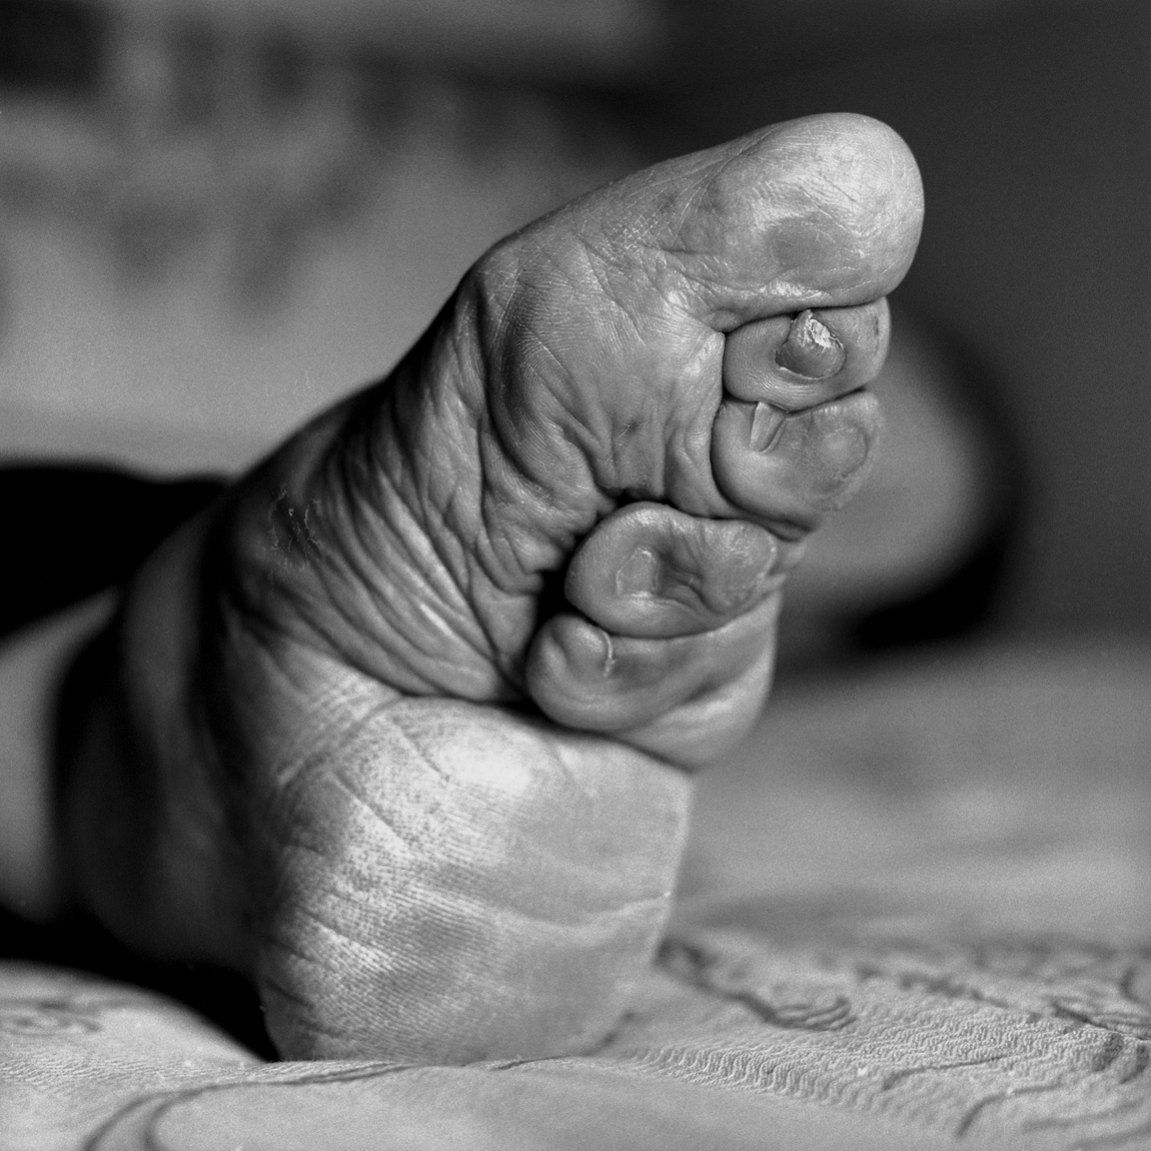 China Photo Story: The Last Survivors Of Crippling Foot